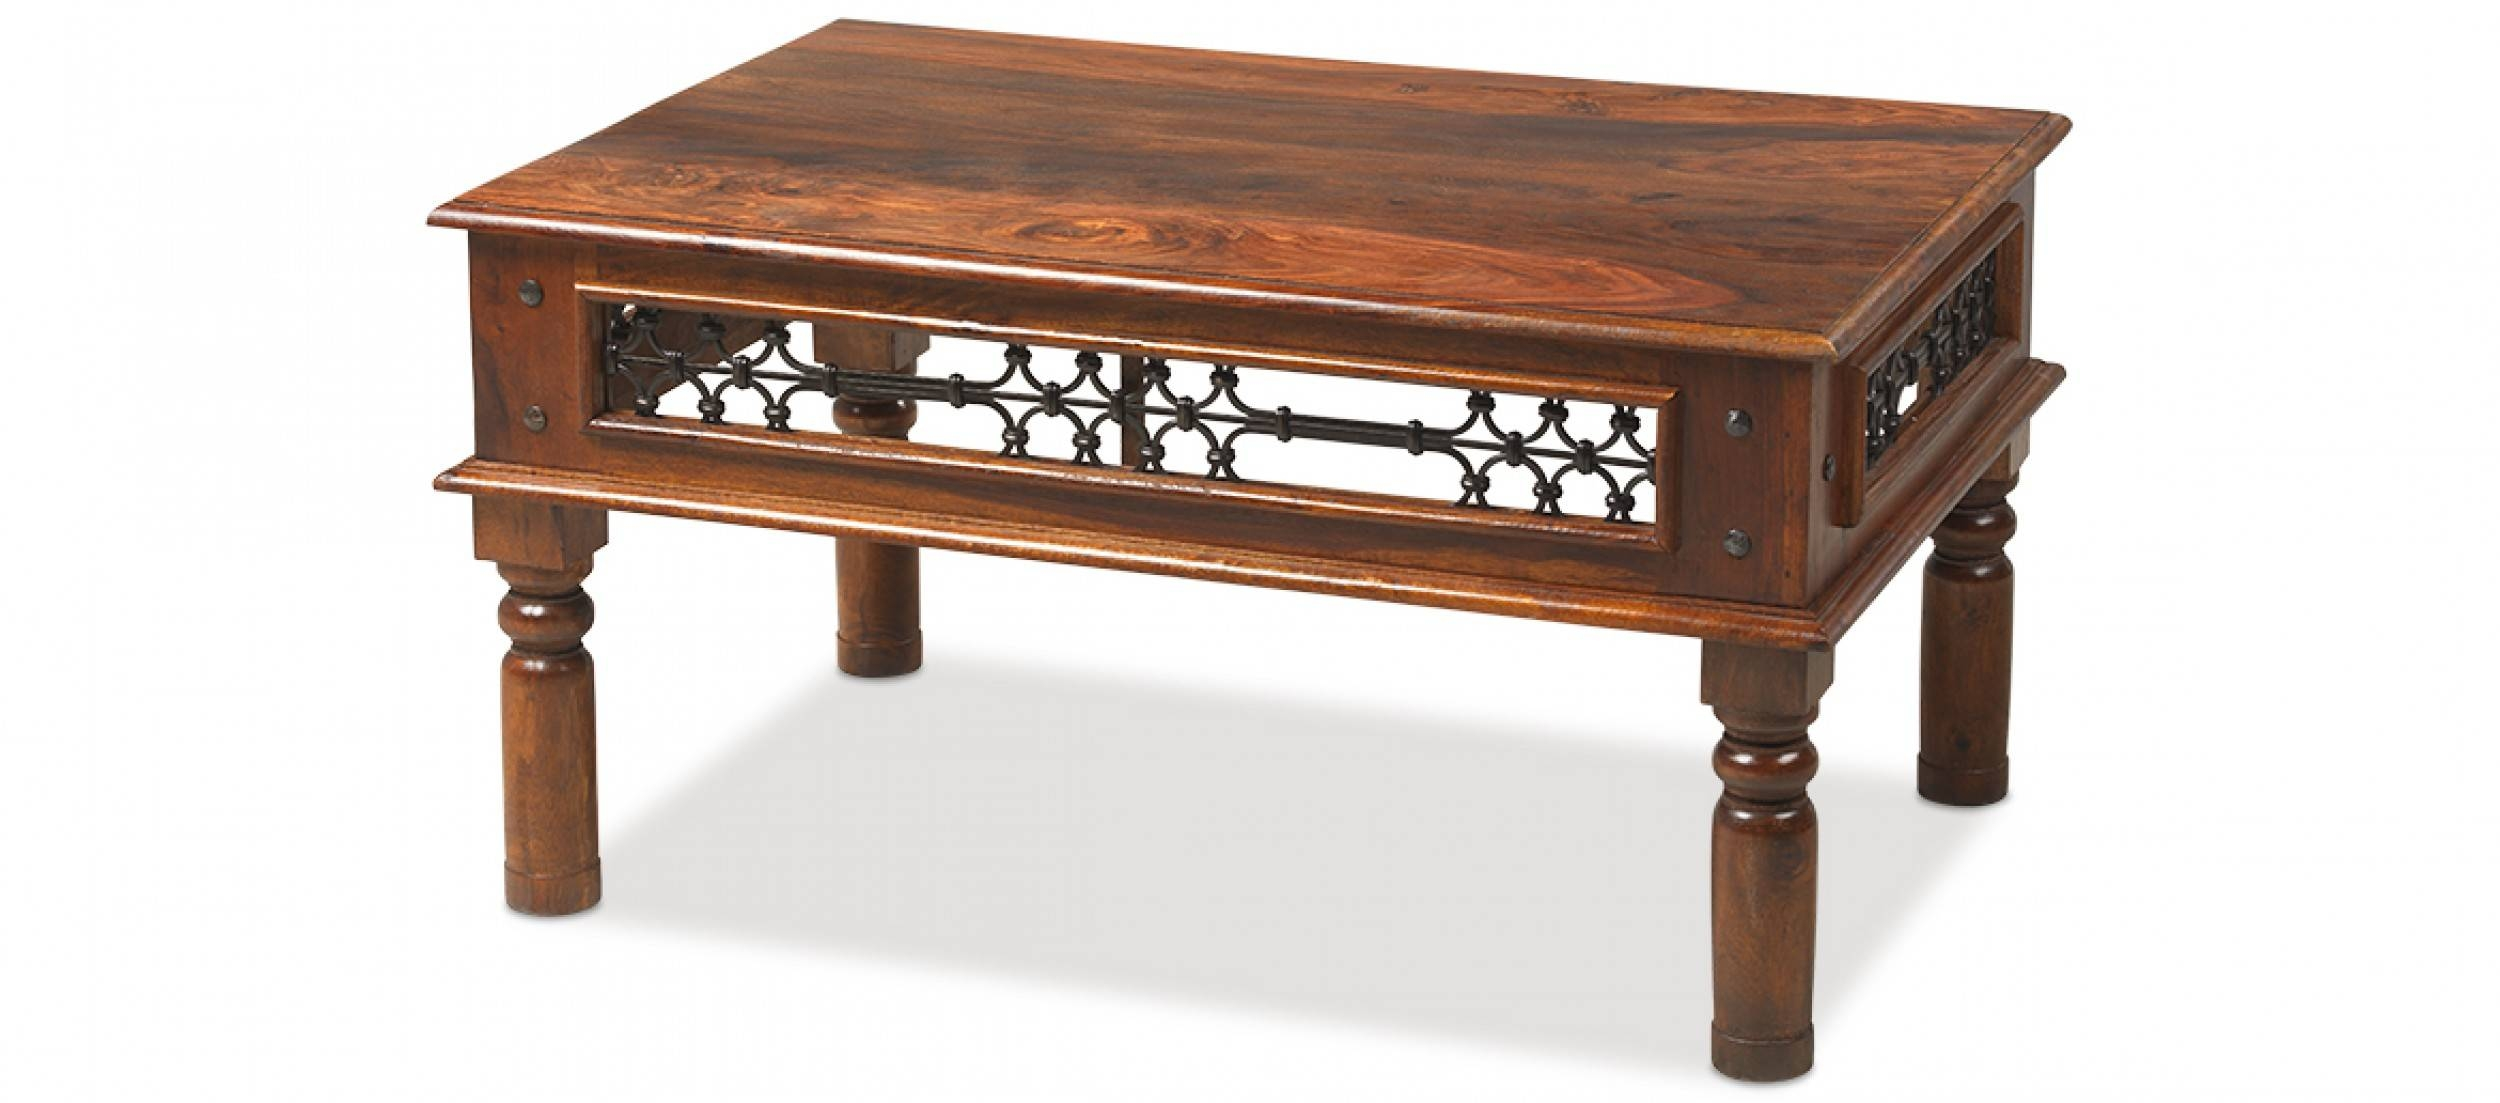 Jali Sheesham 90 Cm Coffee Table | Quercus Living pertaining to Indian Coffee Tables (Image 26 of 30)